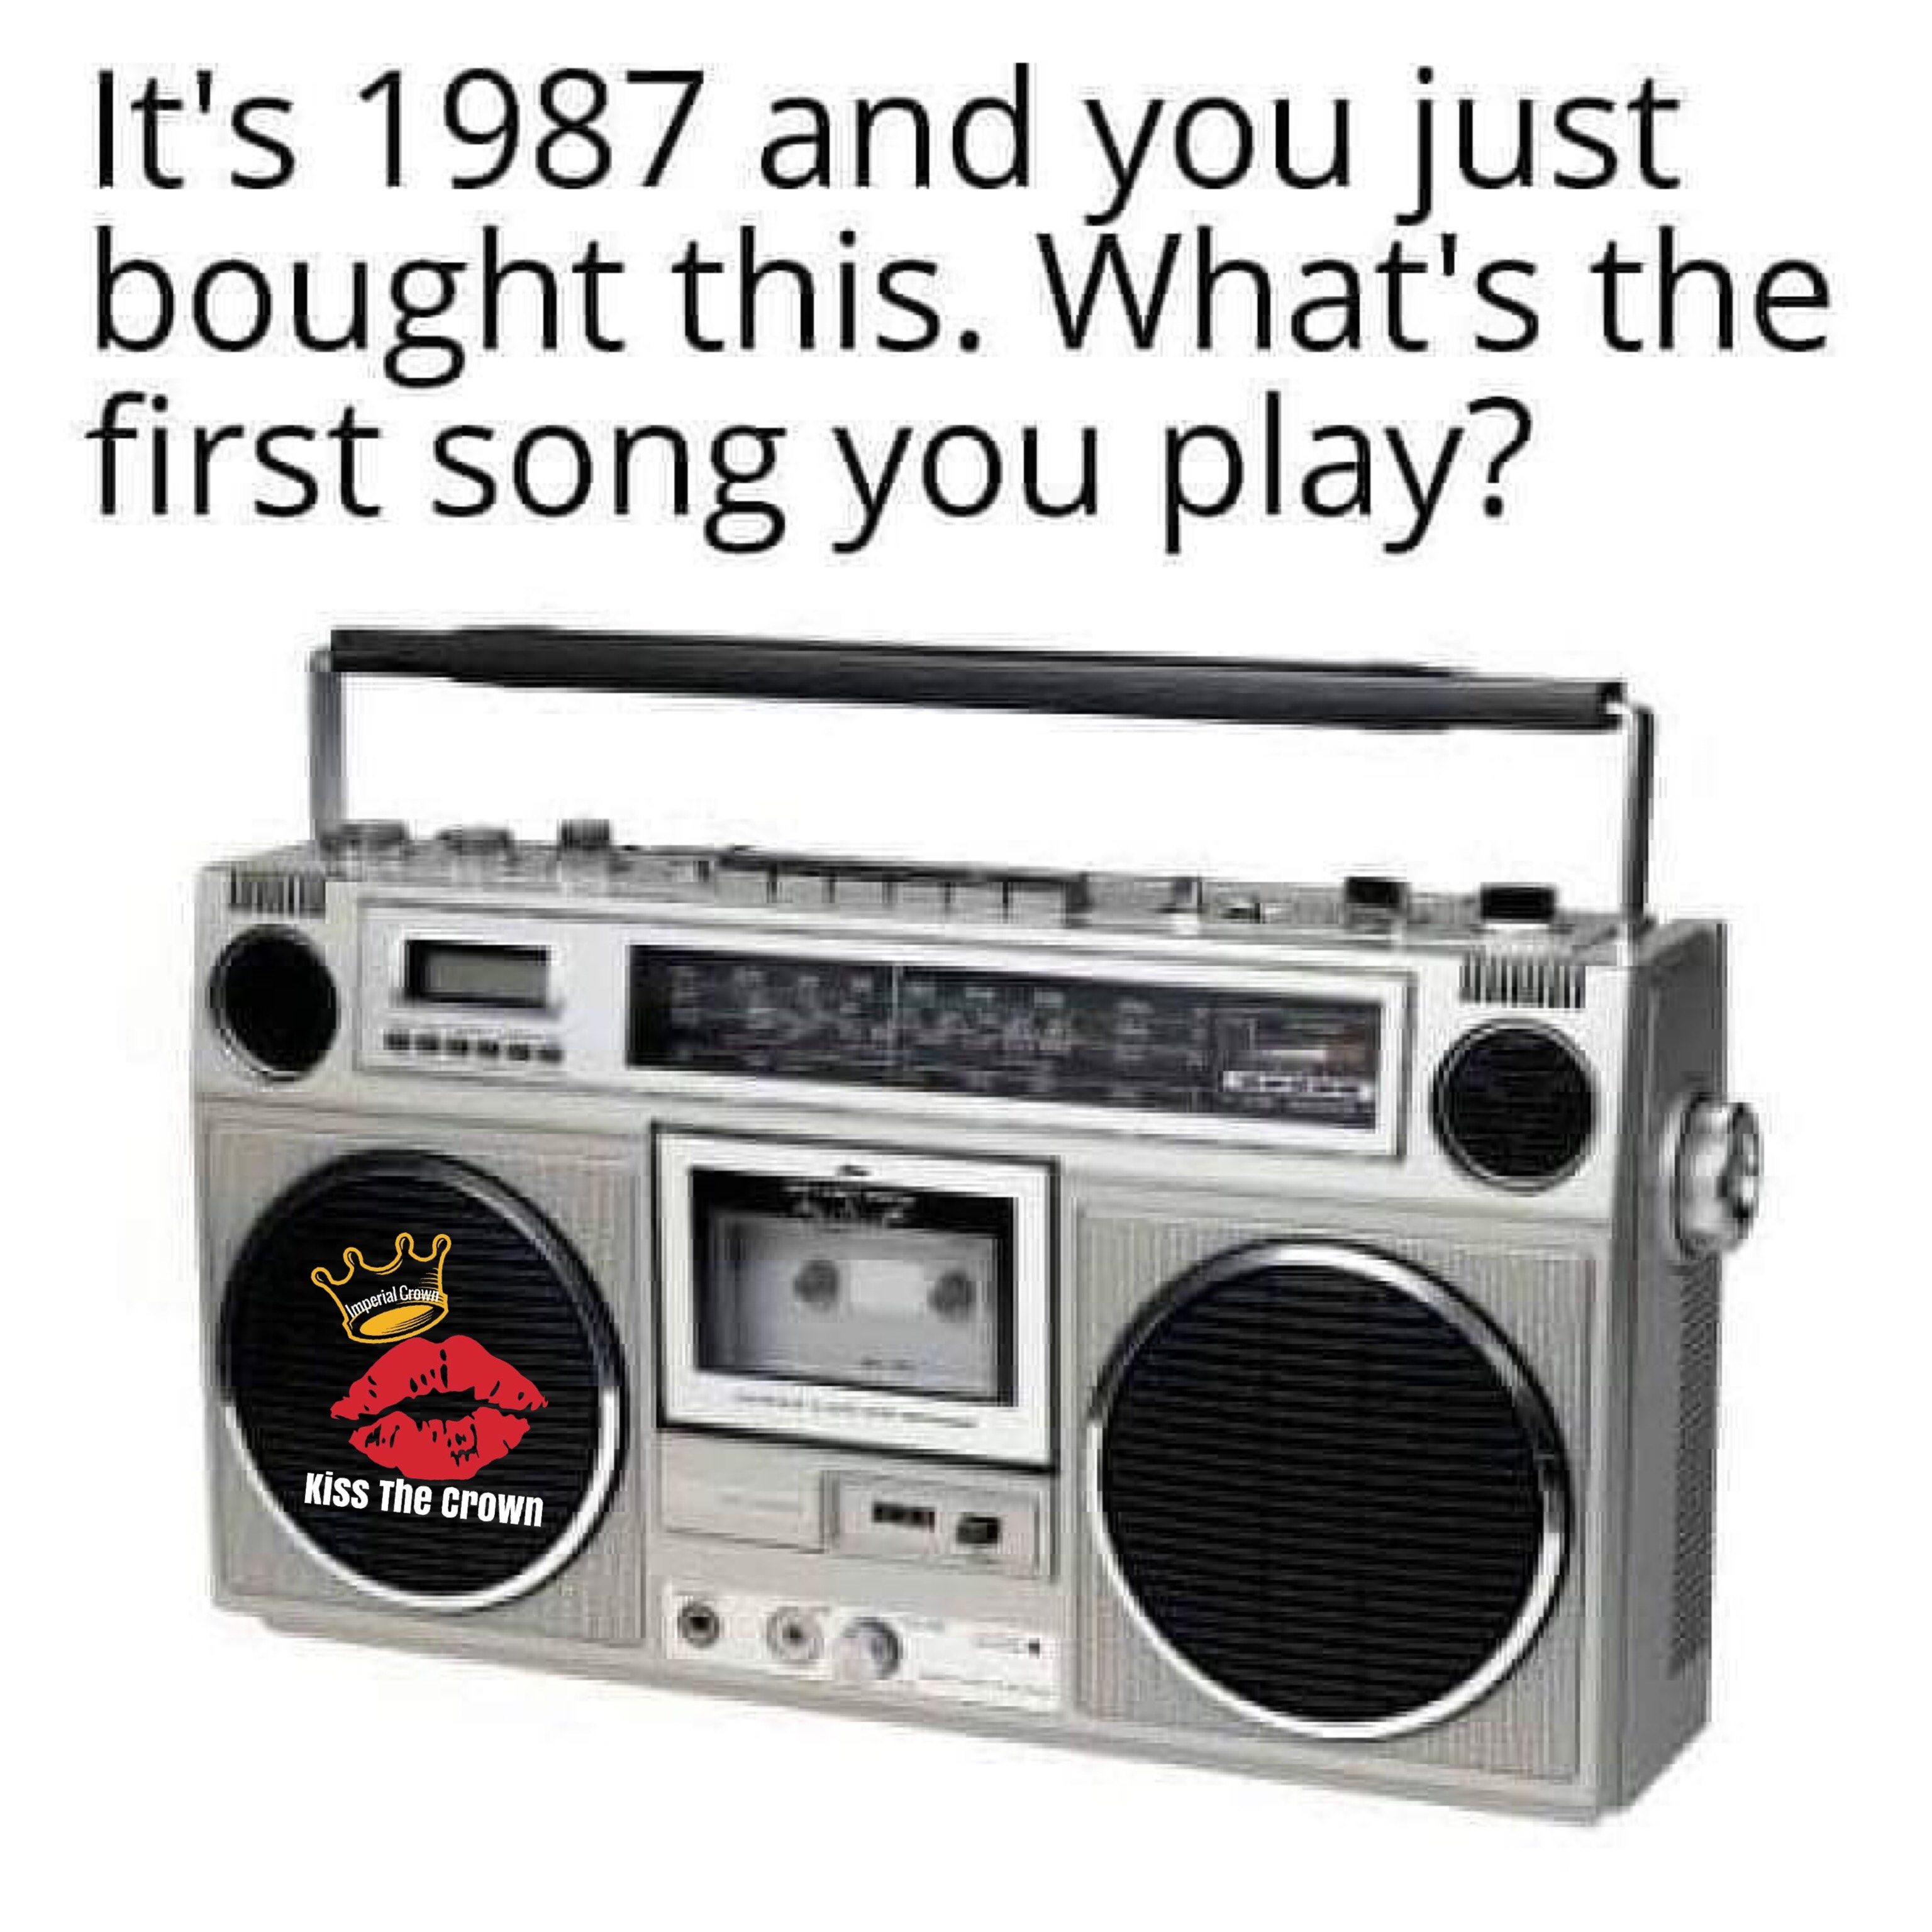 Its 1987 and you just bought this whats the first song you play